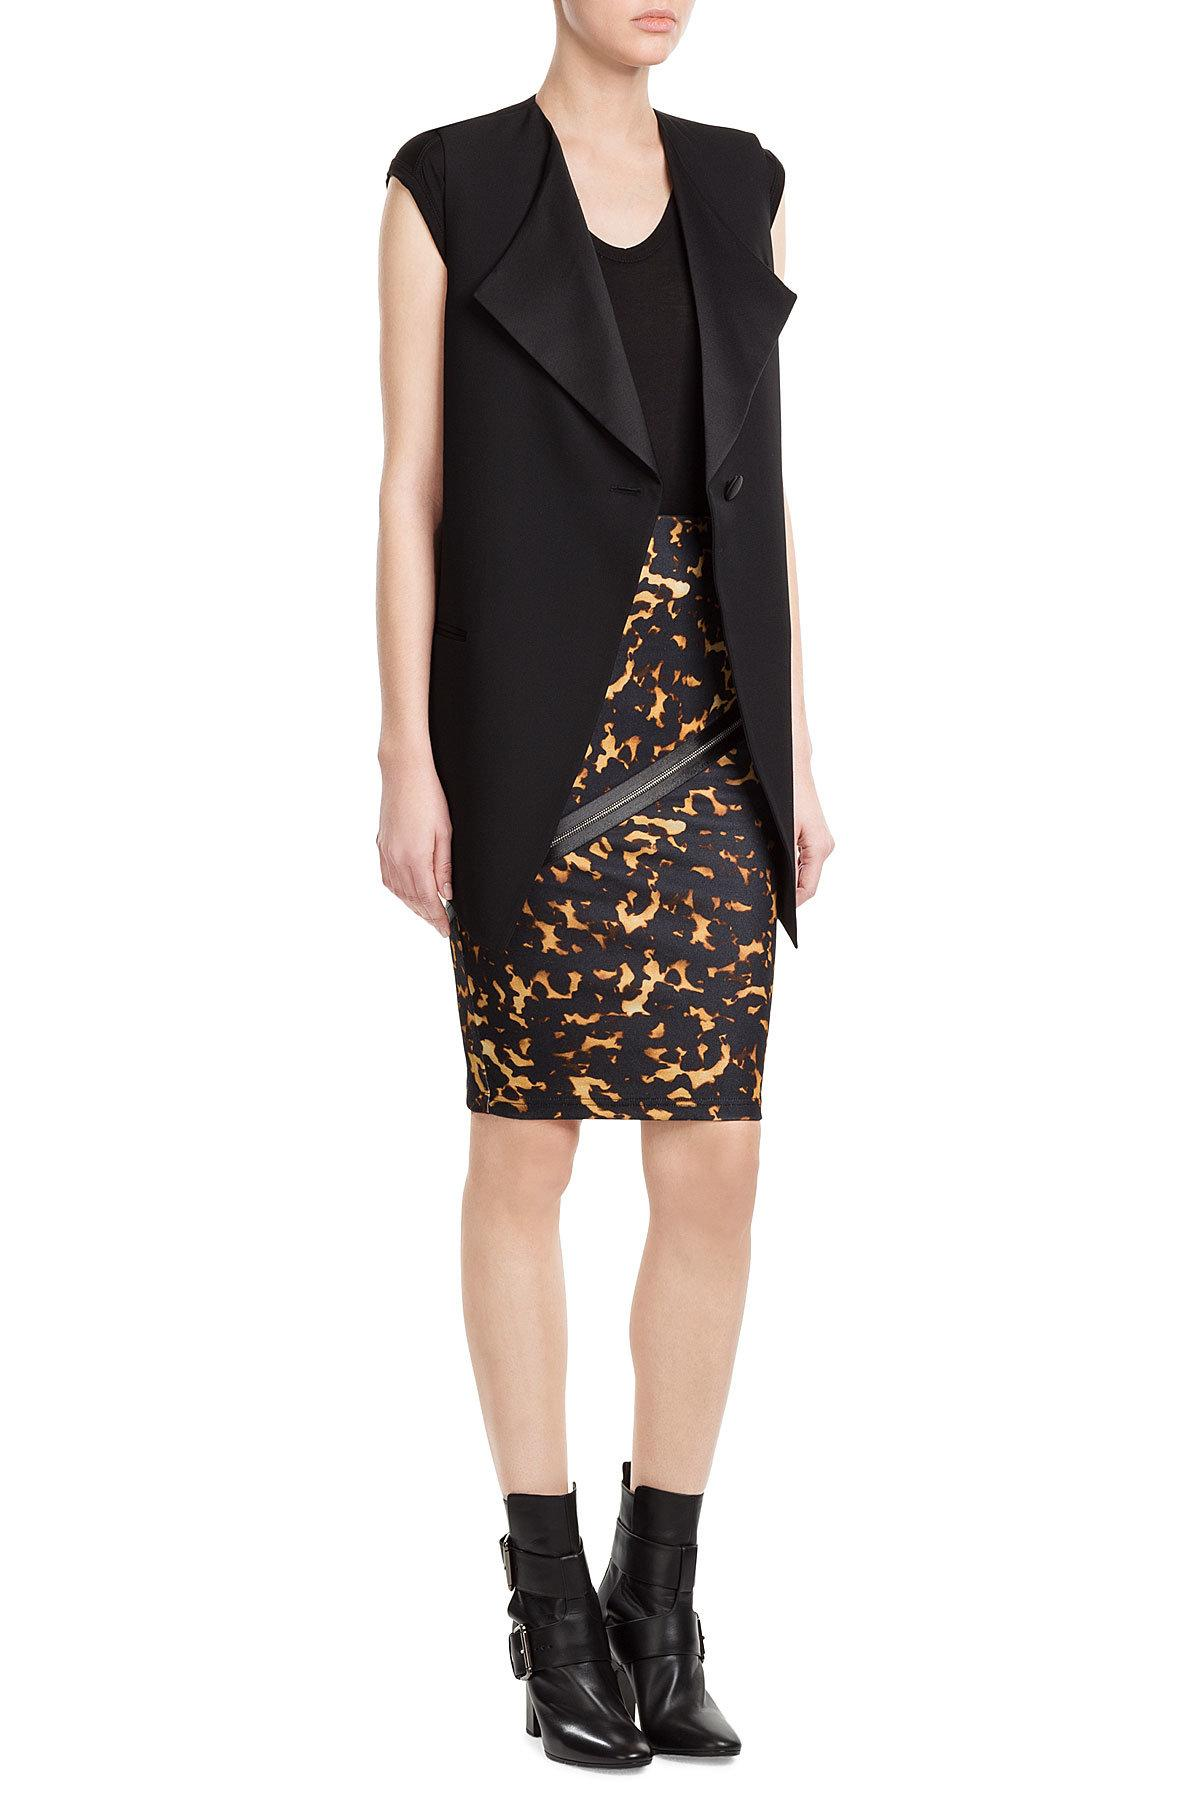 More Details Eileen Fisher Washable Silk/Cotton Midi Pencil Skirt, Petite Details Eileen Fisher interlock knit, calf-length skirt, available in your choice of color. Approx. 31